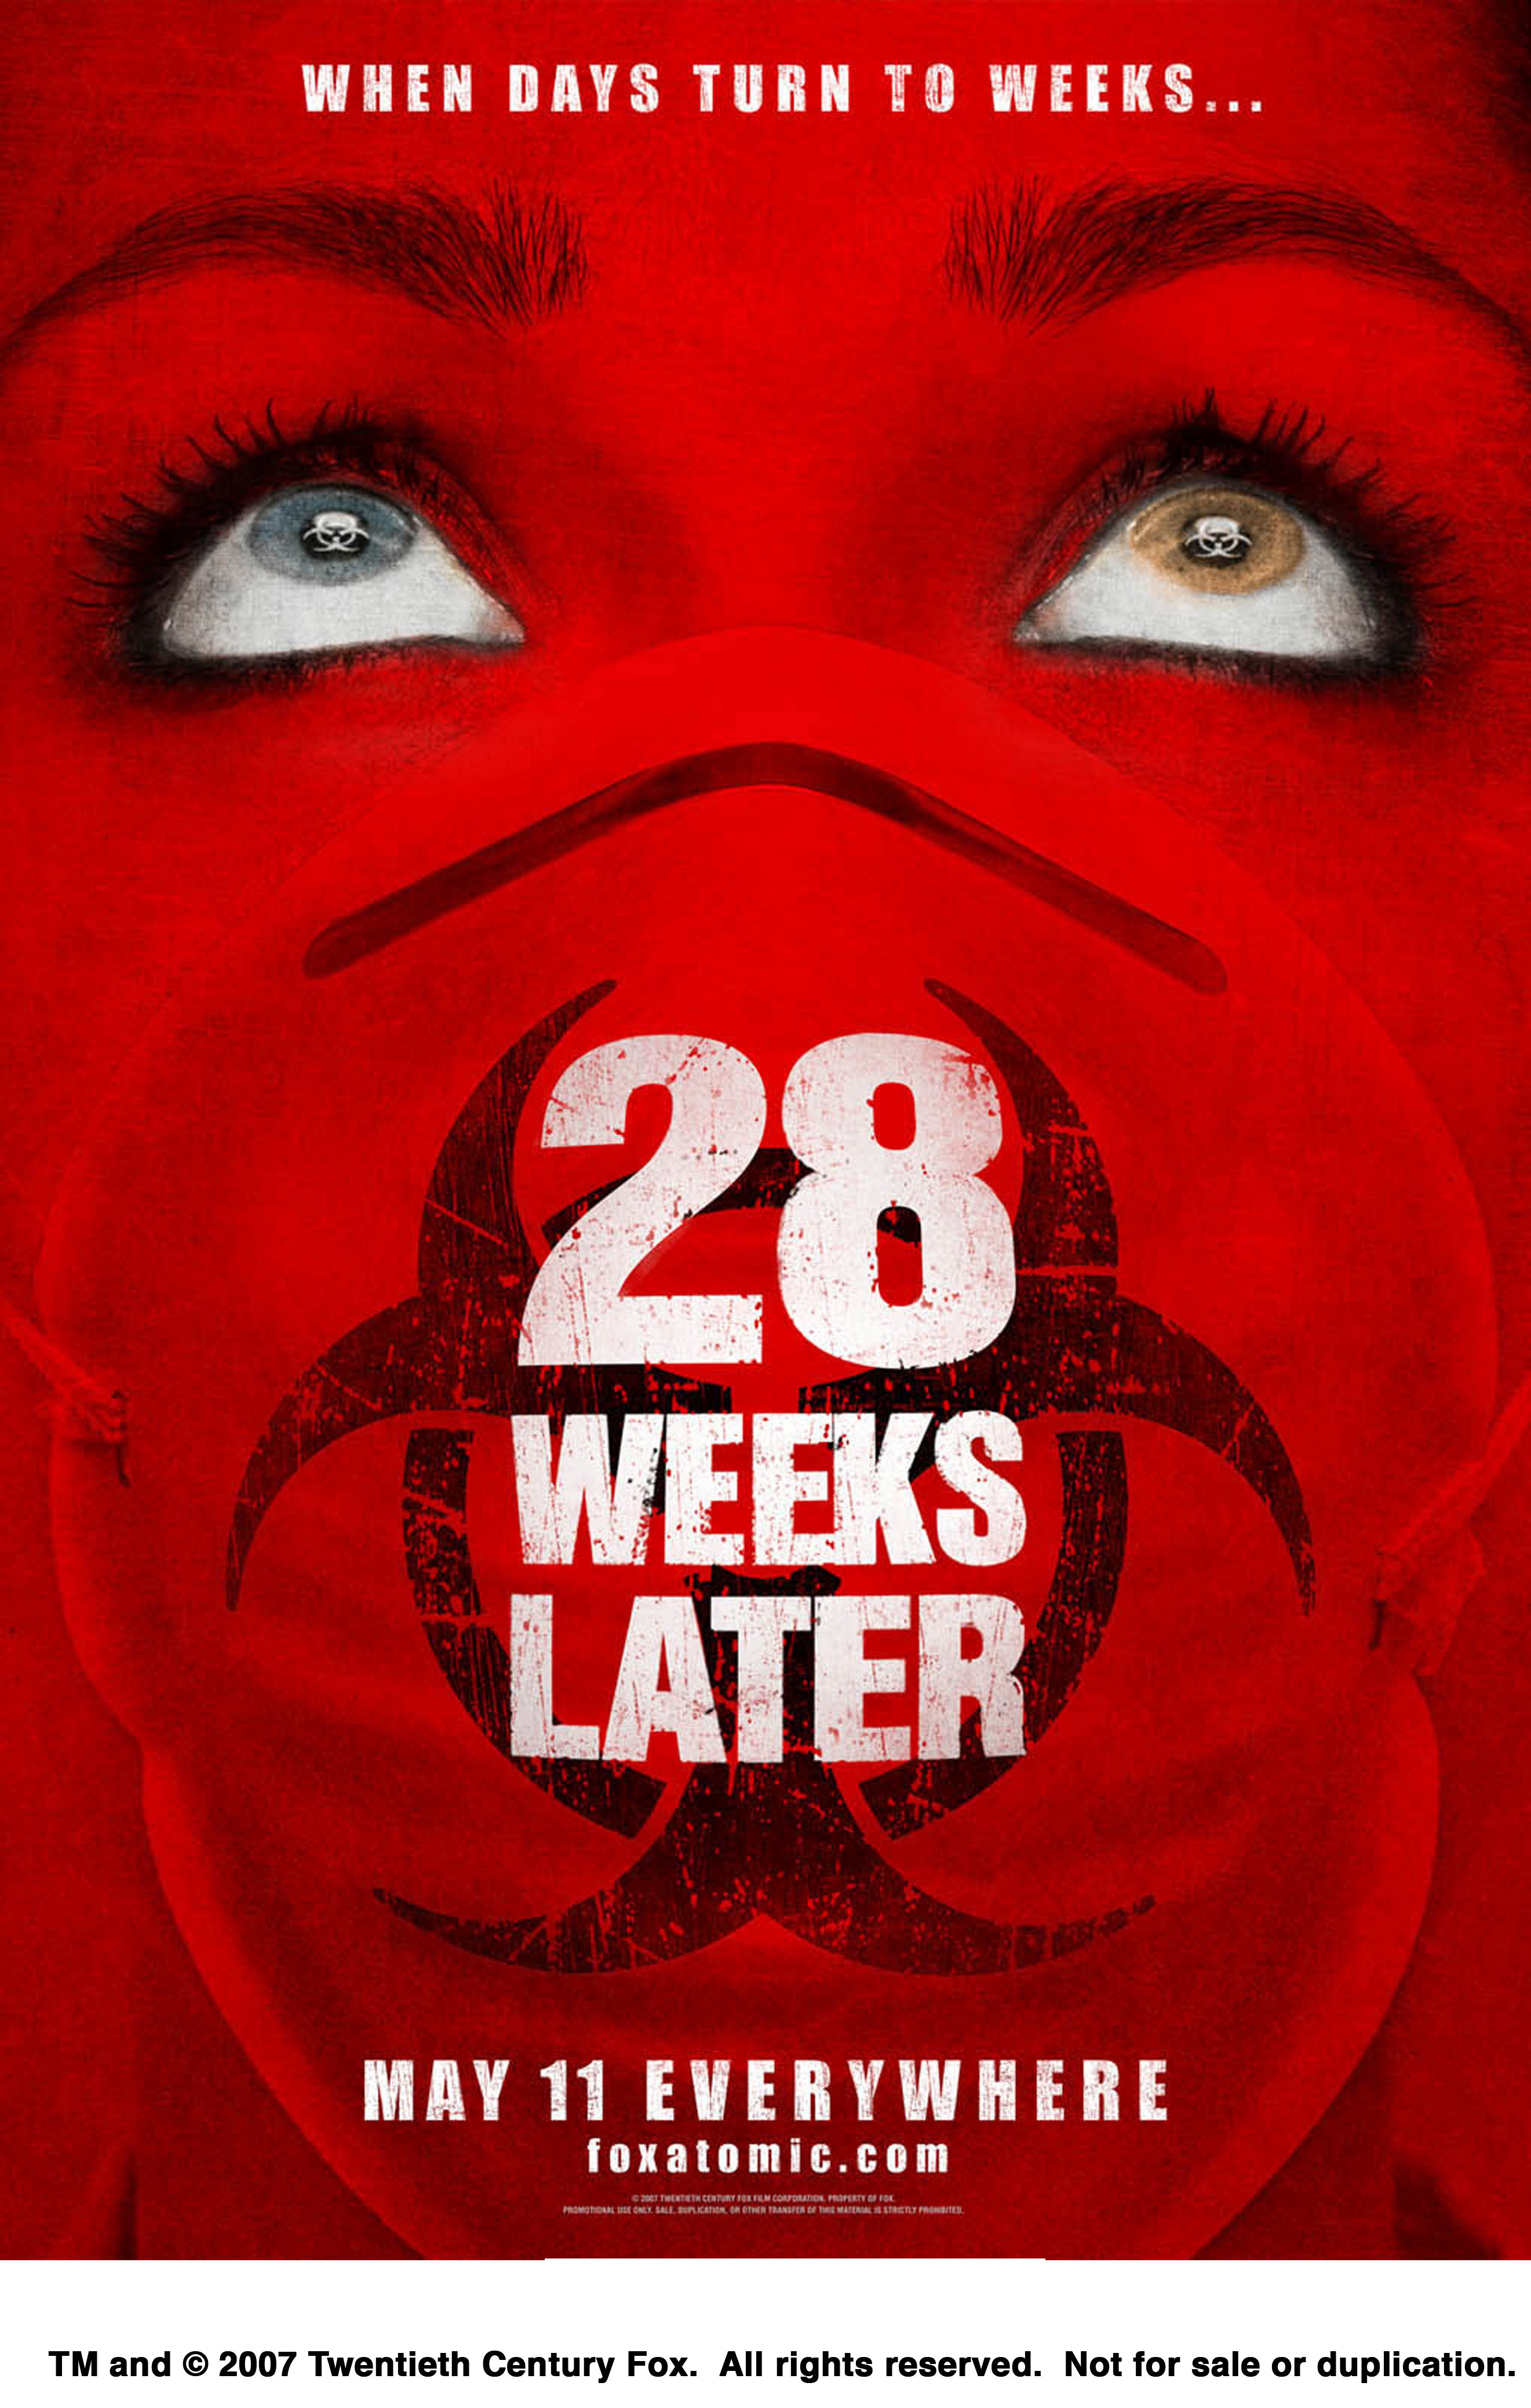 weeks later Movie posters HD Wallpaper